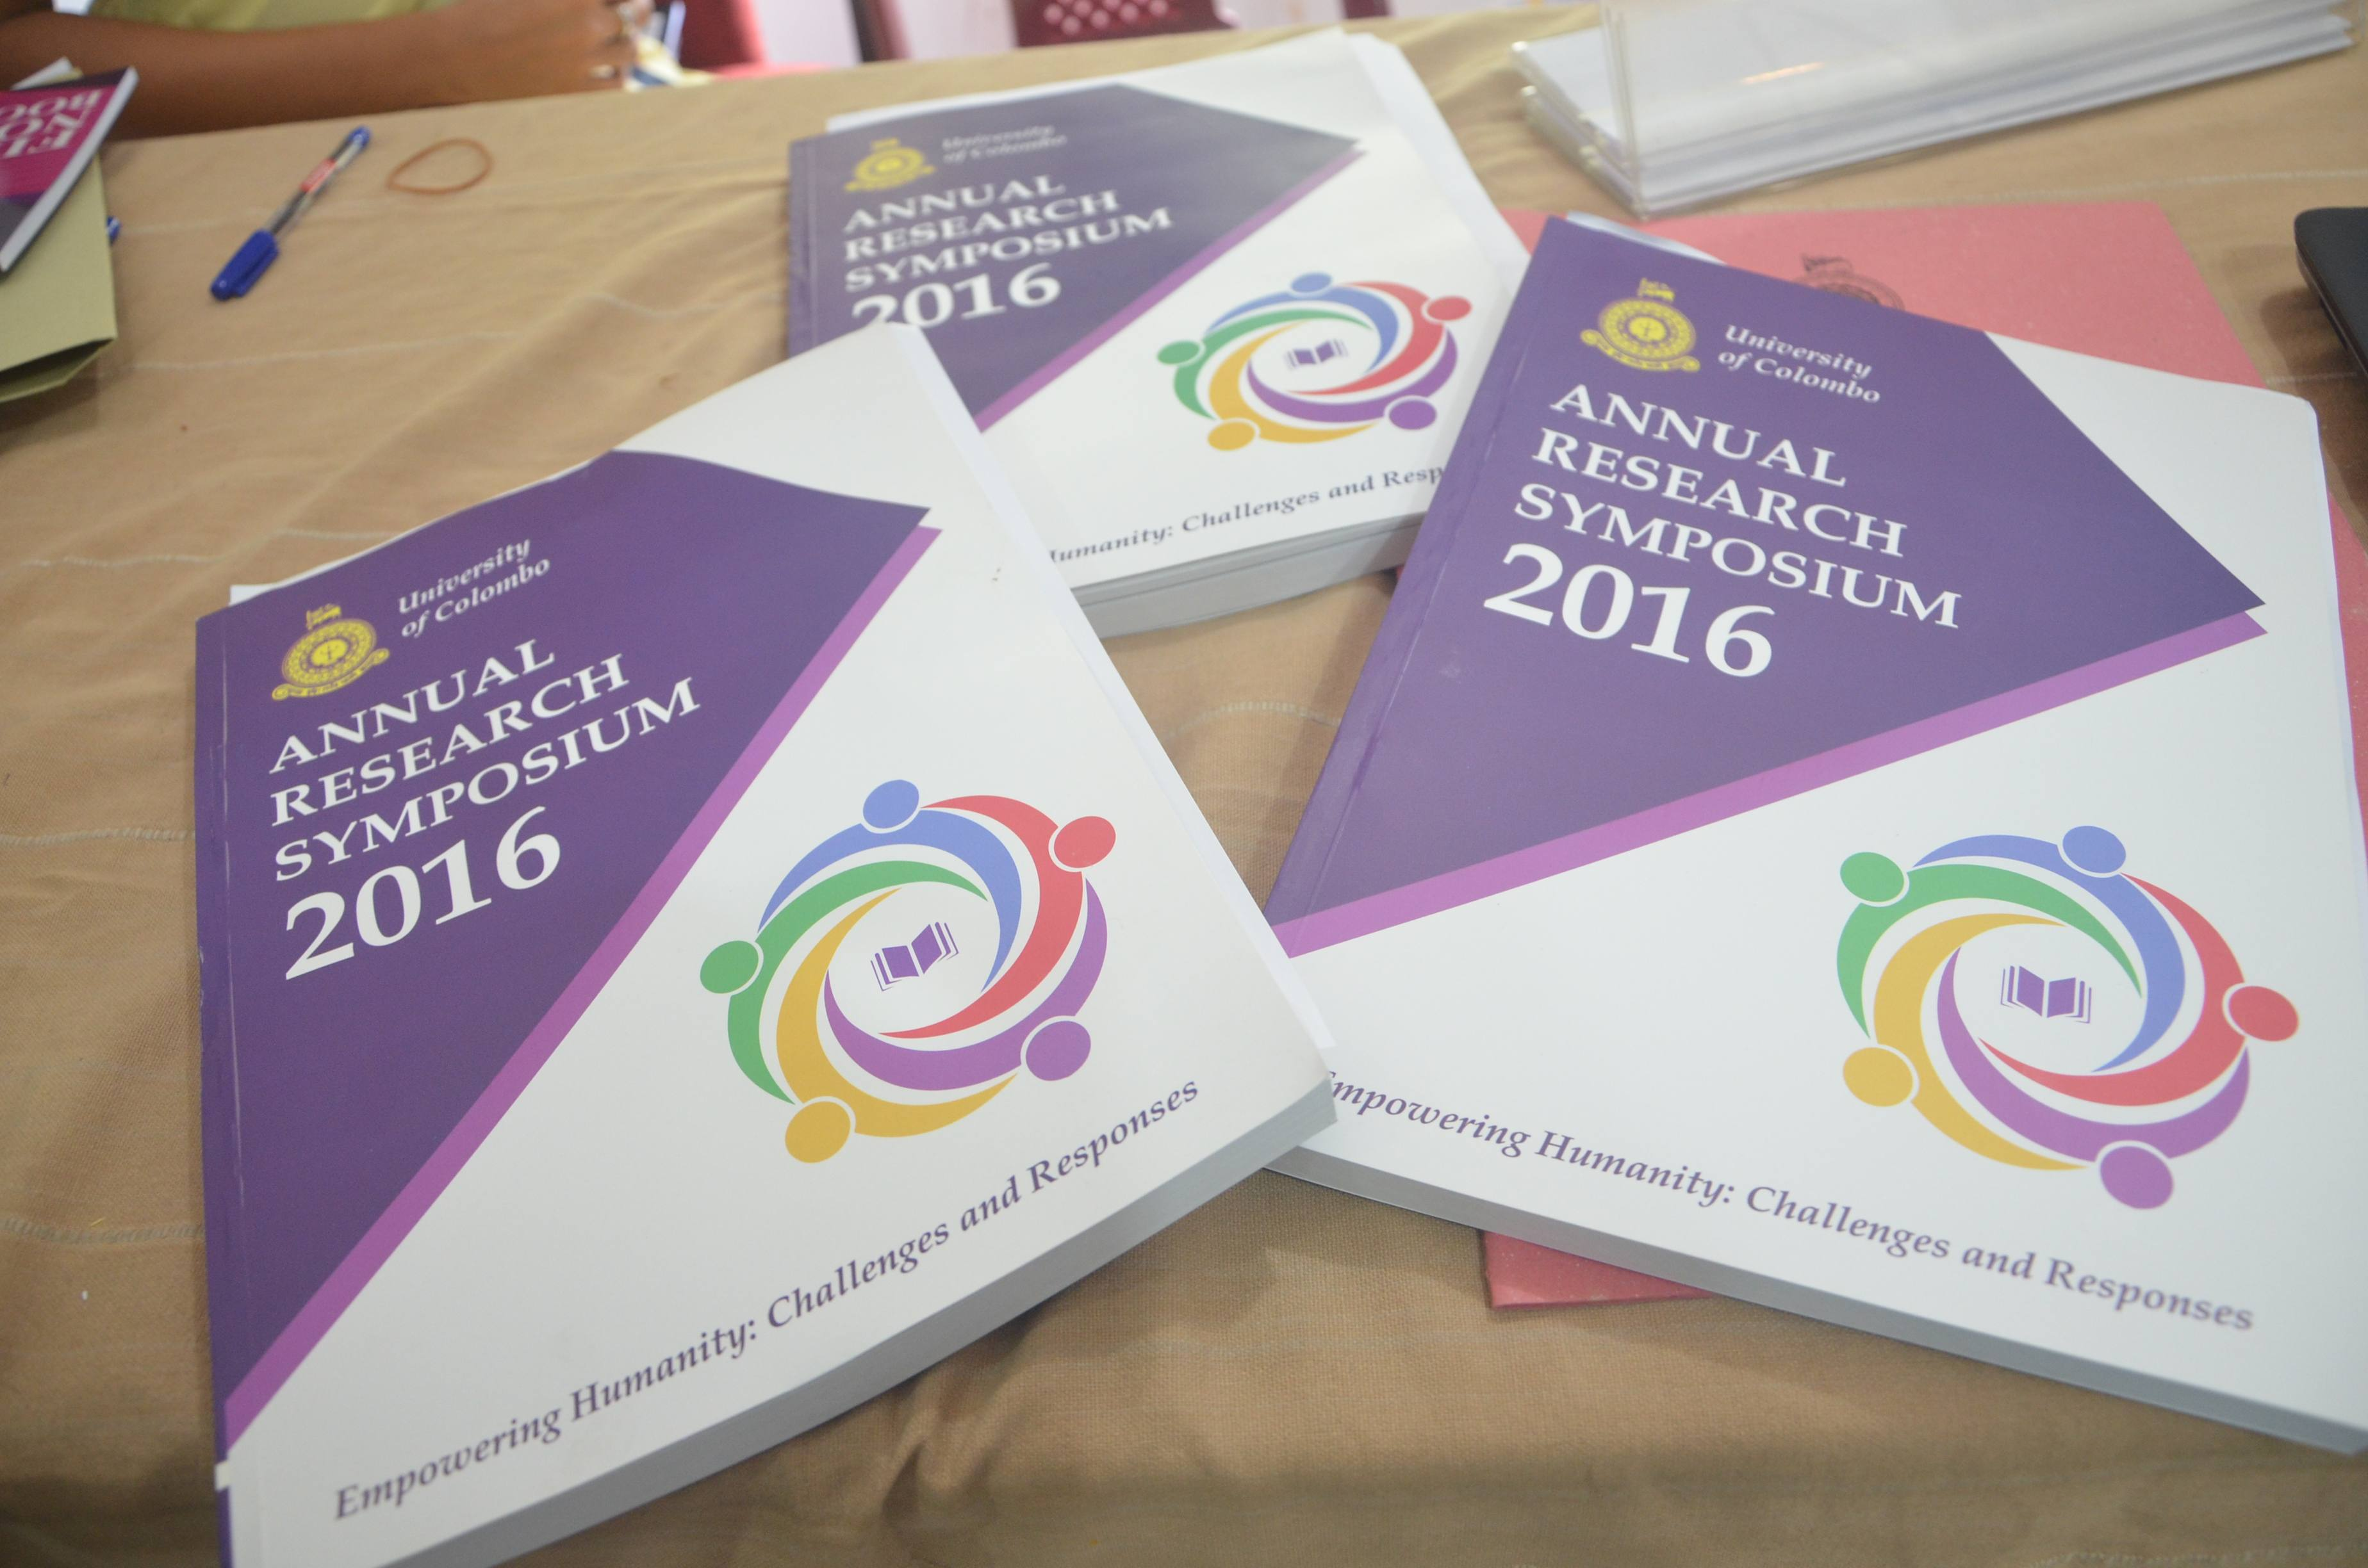 Annual Research Symposium 2016 – Faculty of Management & Finance